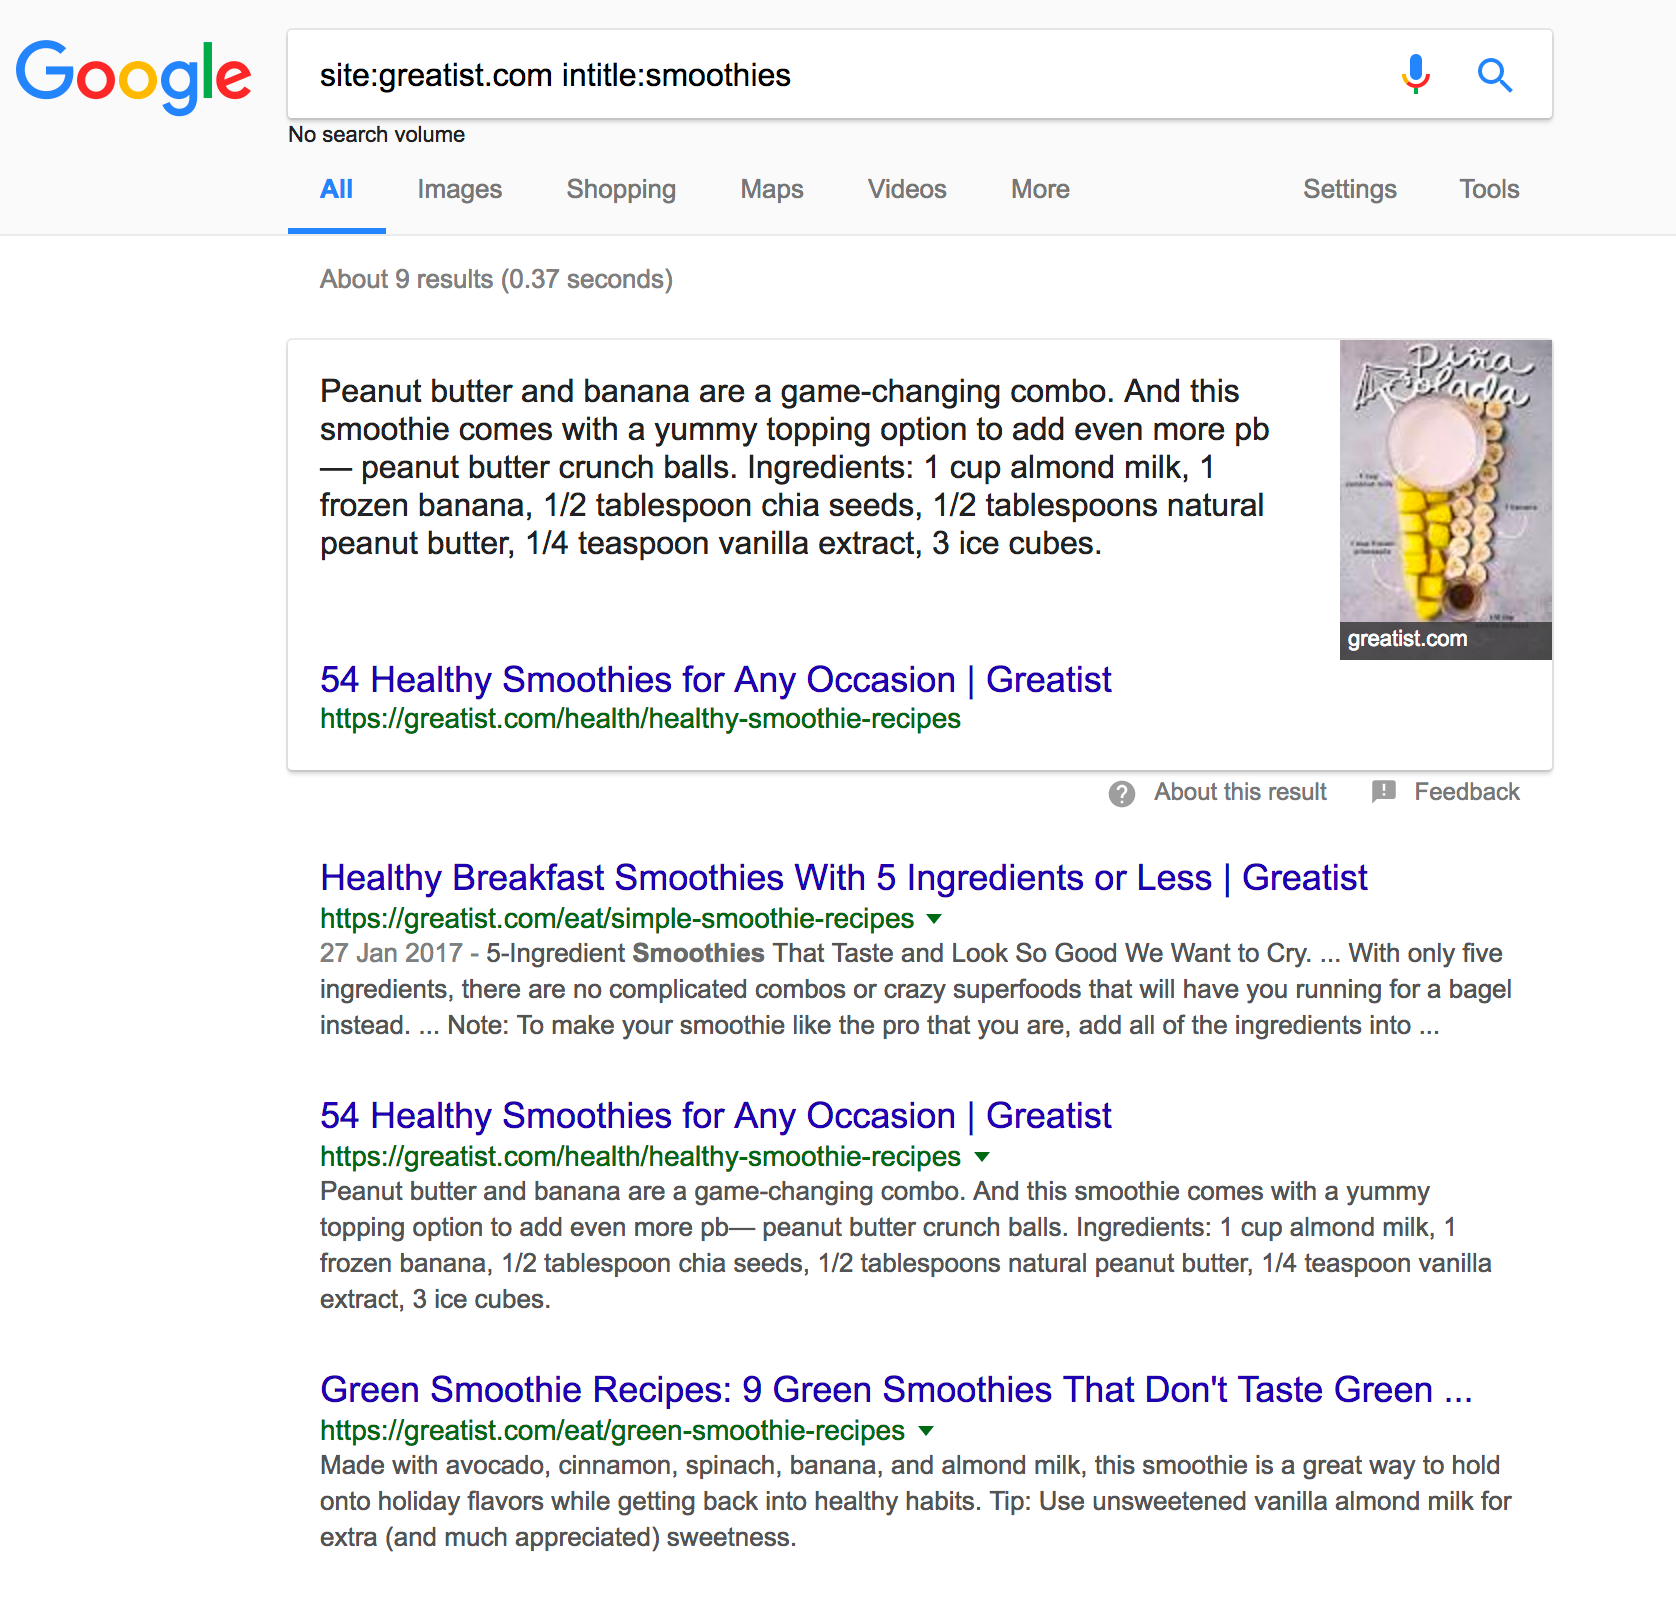 Screenshot of a google search for greatist.com and smoothies